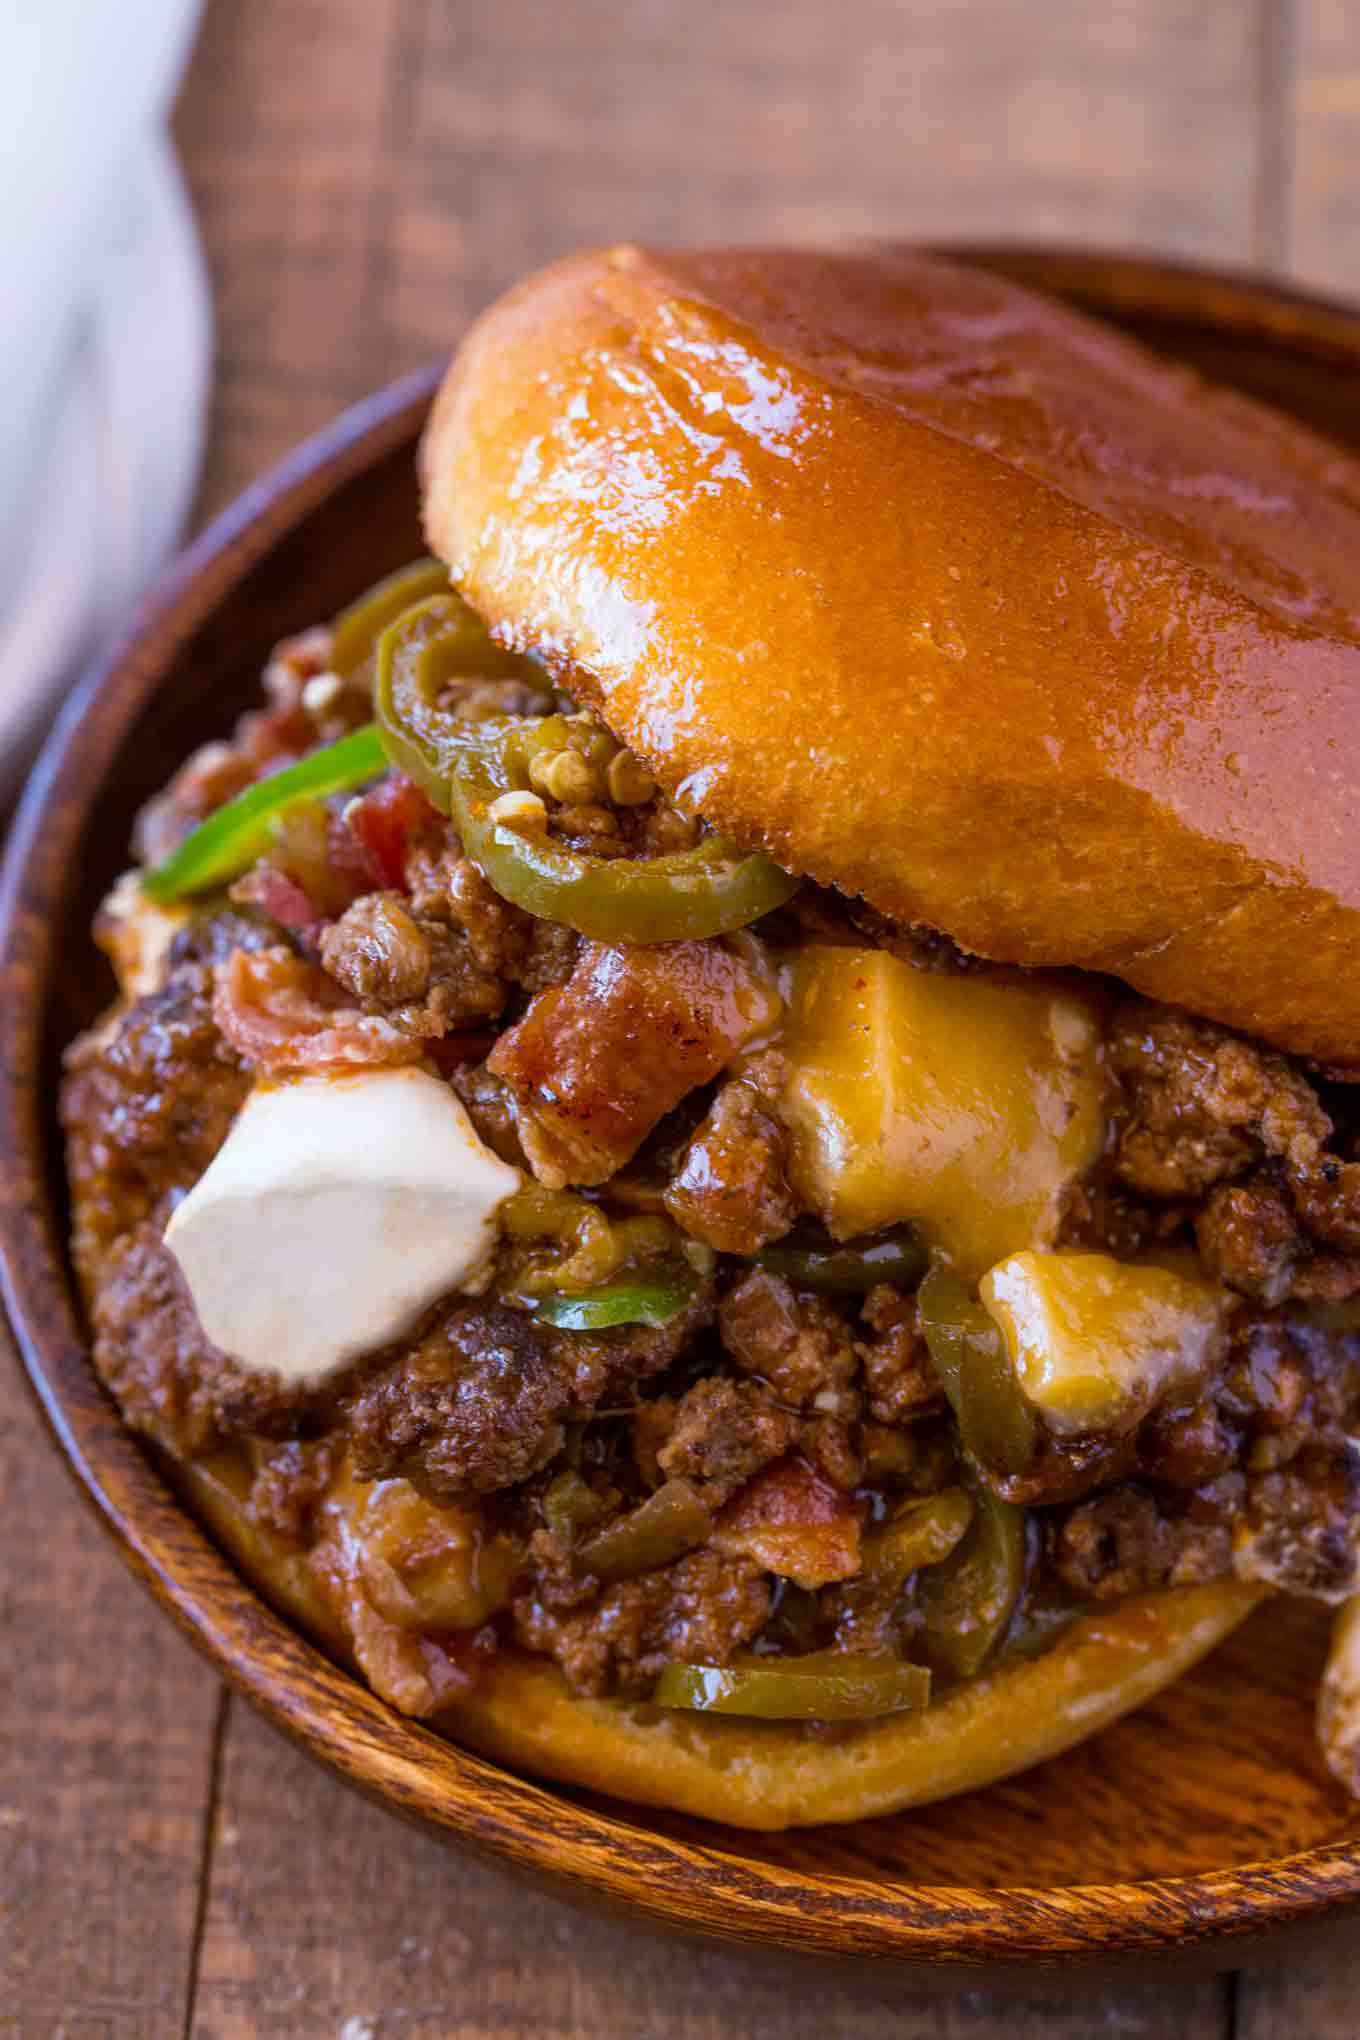 Bacon and Cheddar Jalapeno Sloppy Joes